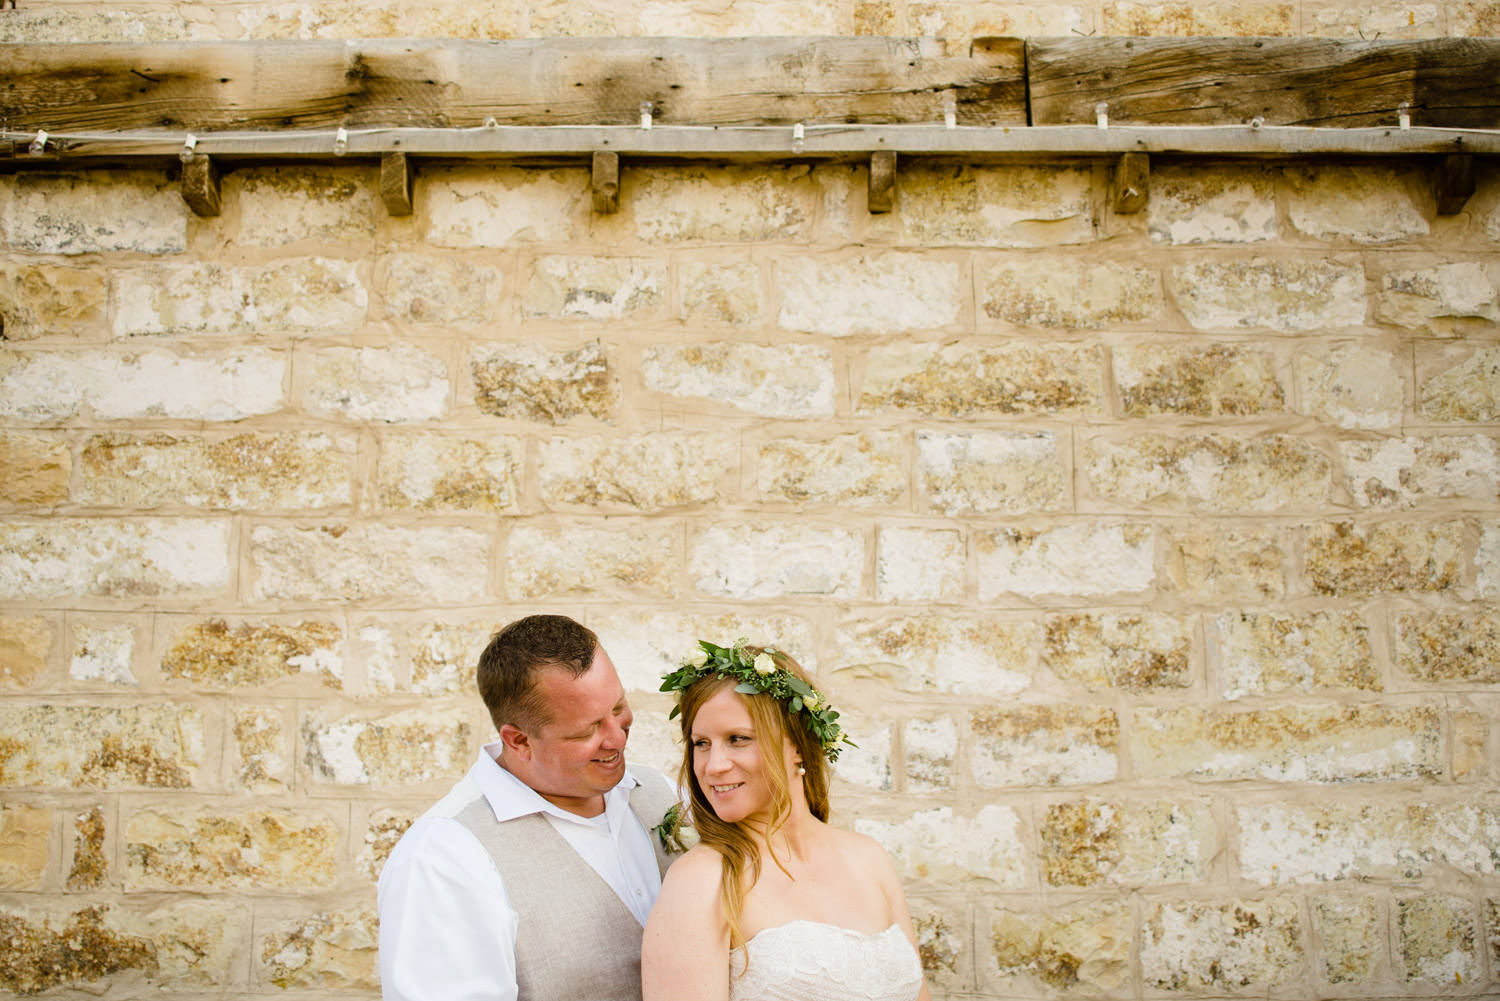 Spring Farm wedding couple smiling against historical building wall photo